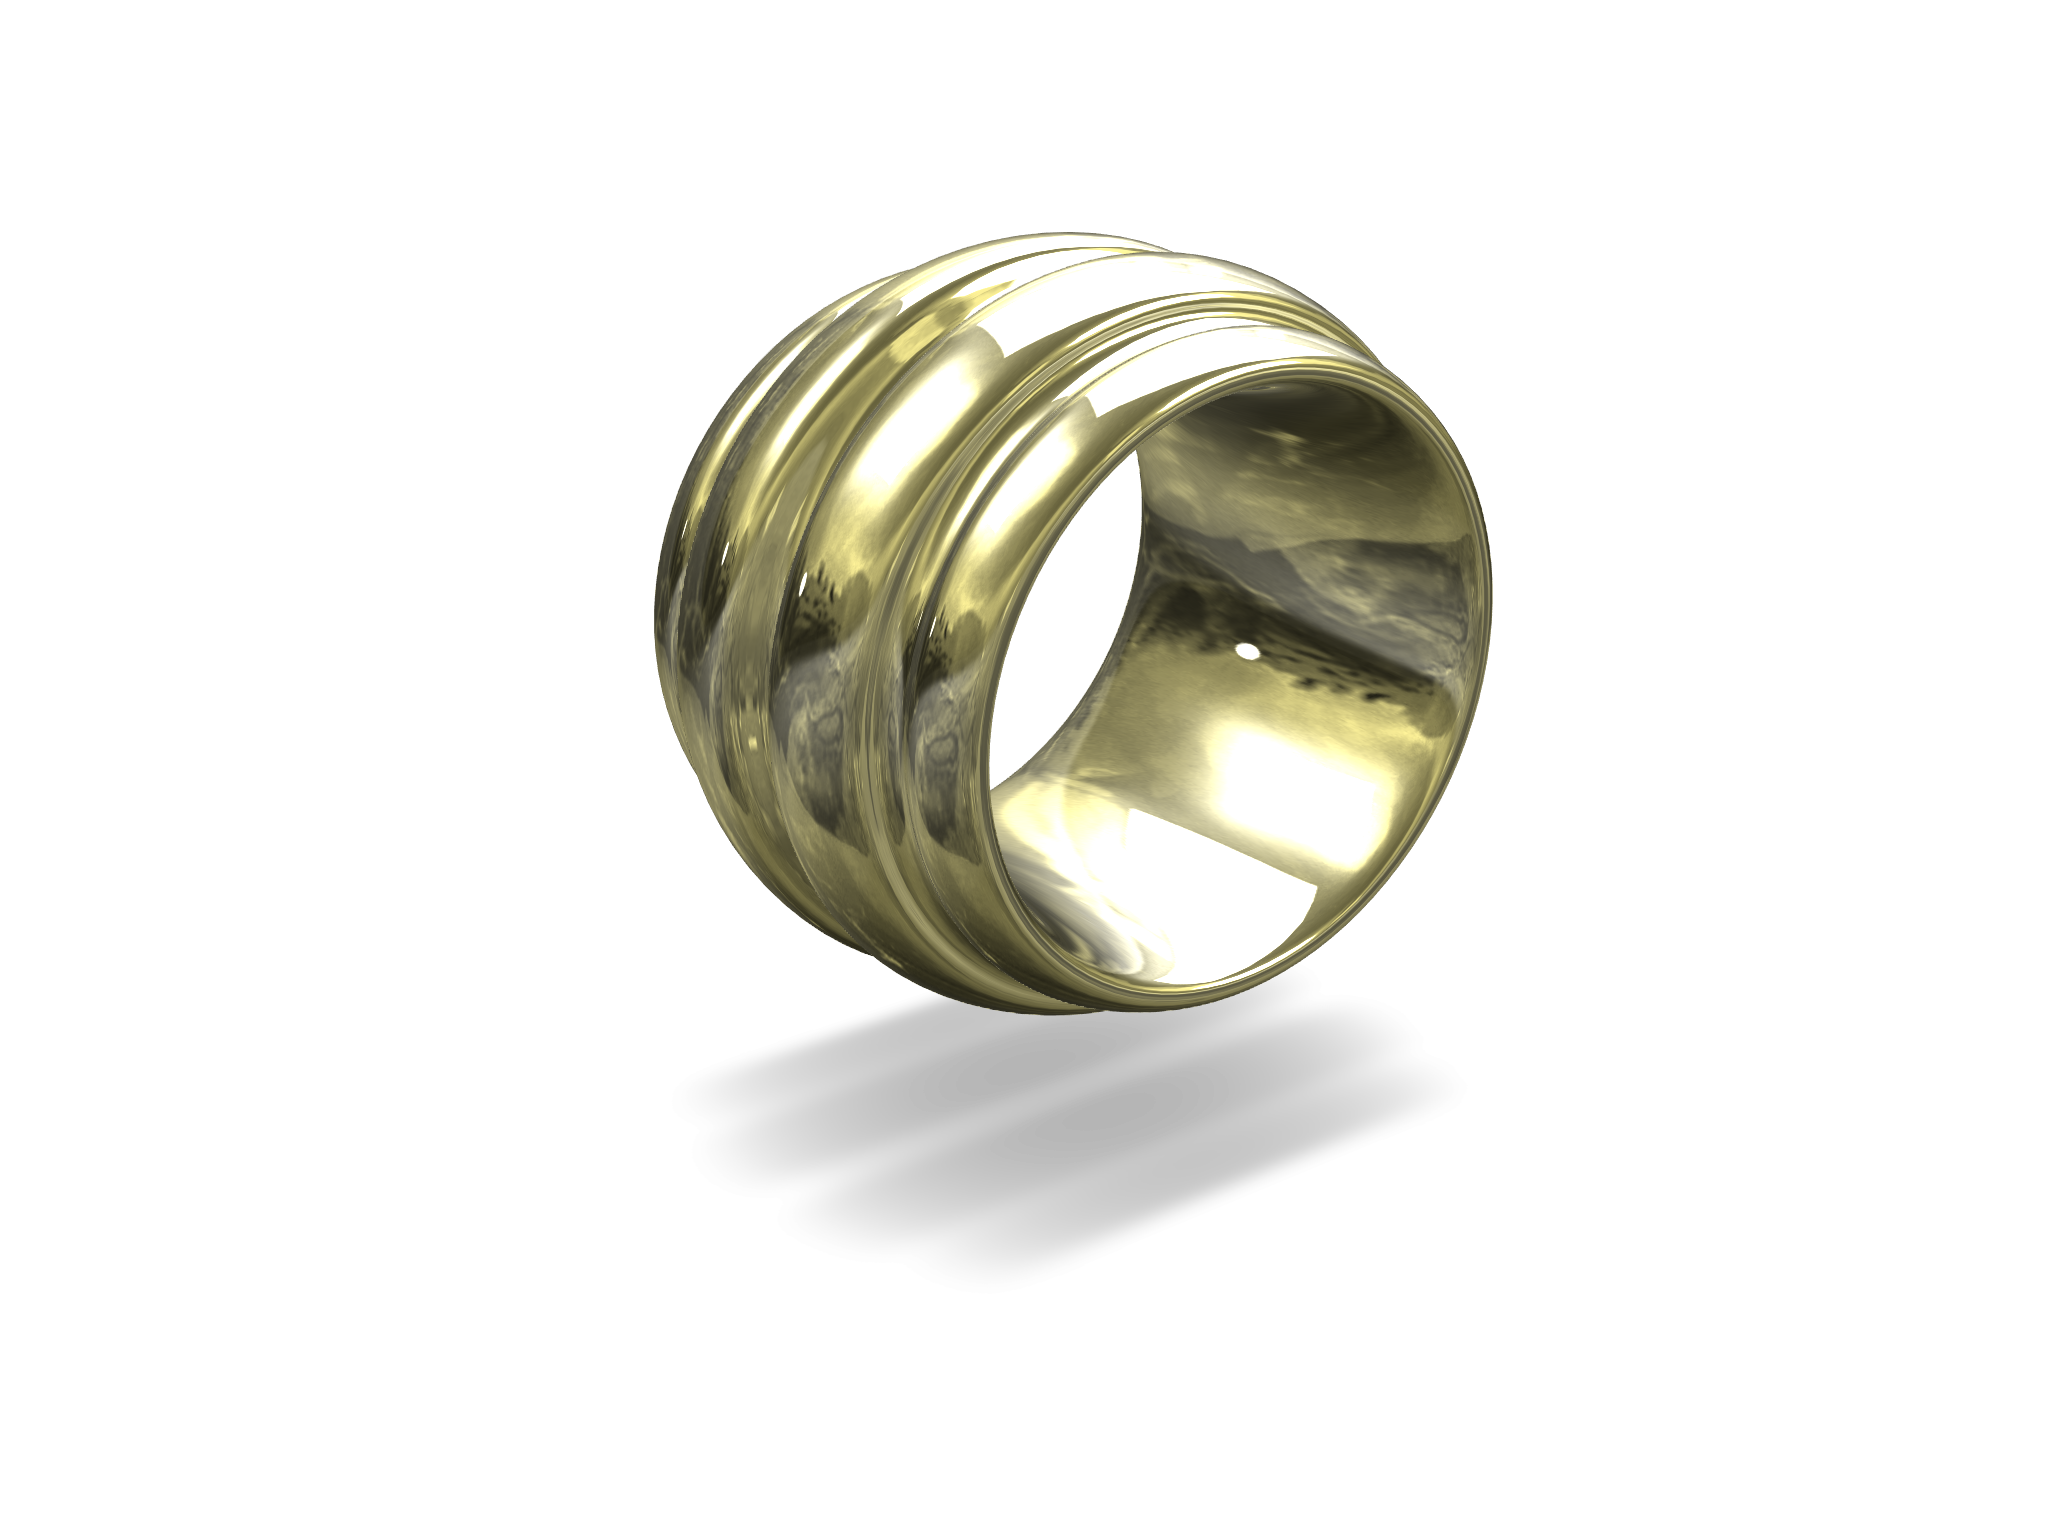 Bold Ring Wired - 3D design by Adn Cetin on Dec 18, 2017